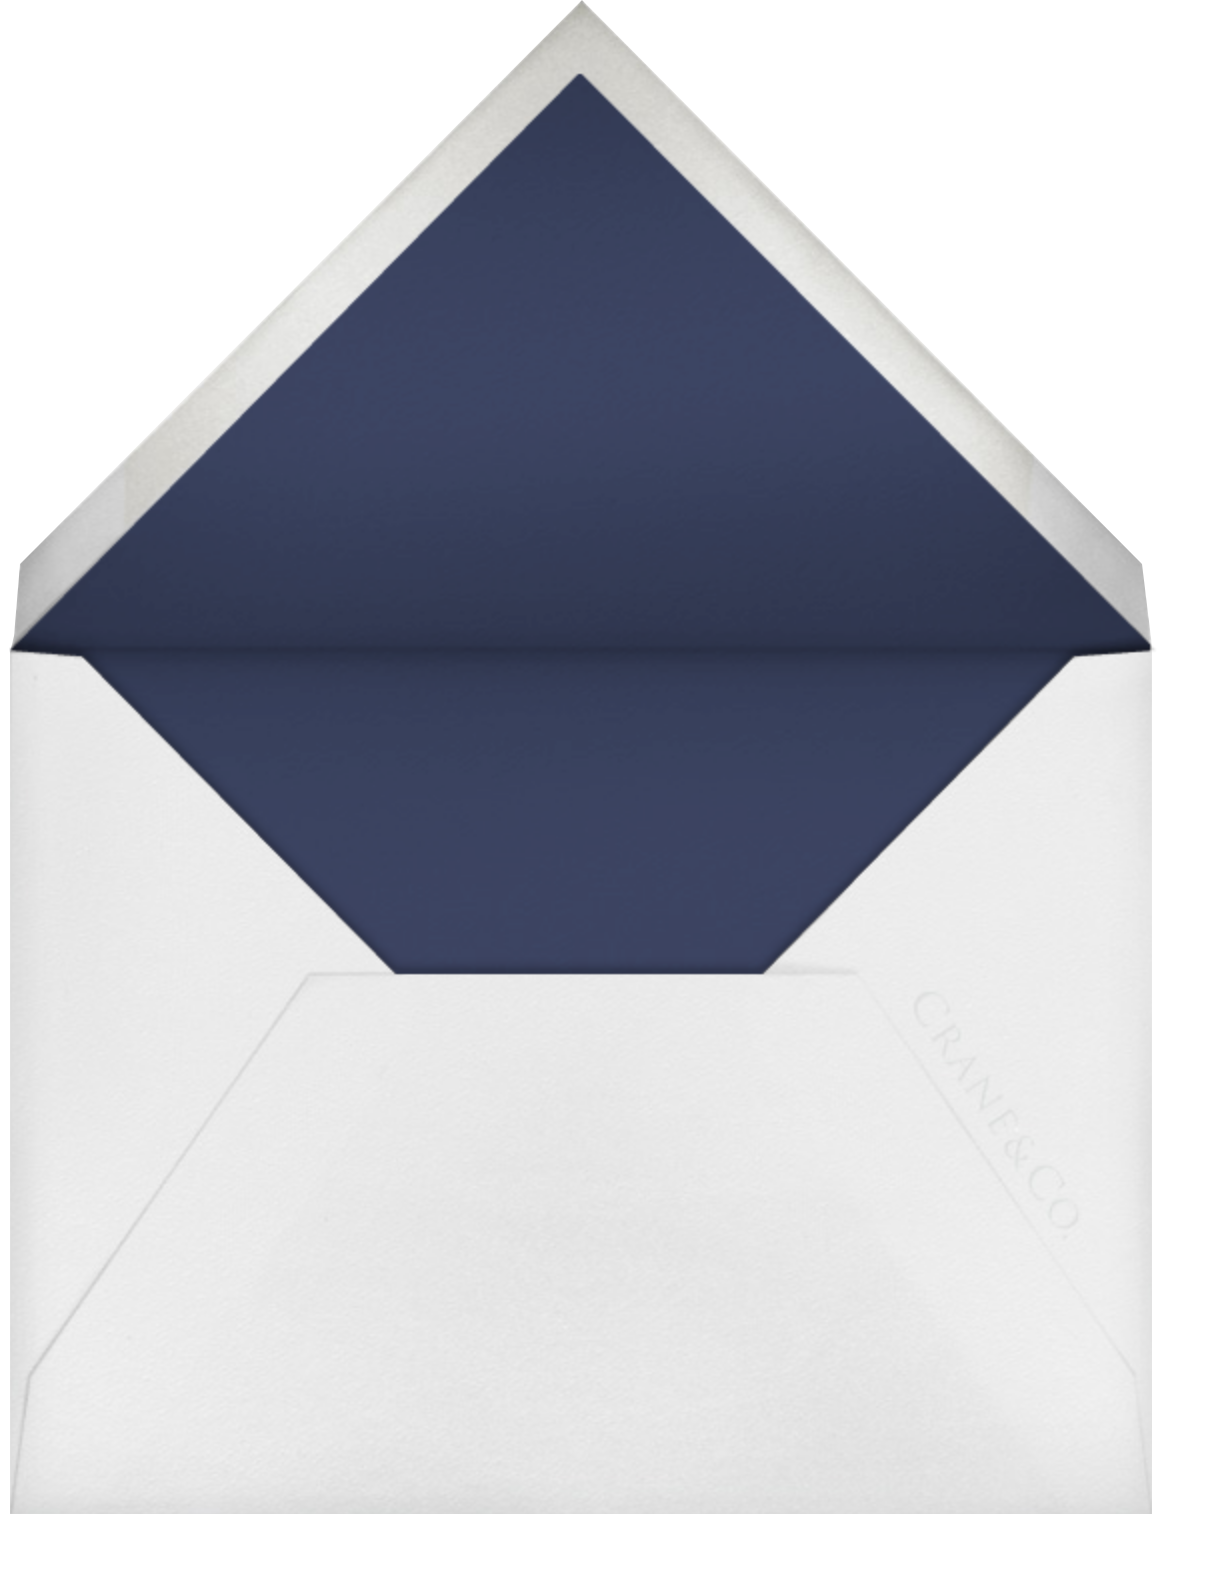 Aperitif (Thank You) - Navy Blue - Crane & Co. - Personalized stationery - envelope back